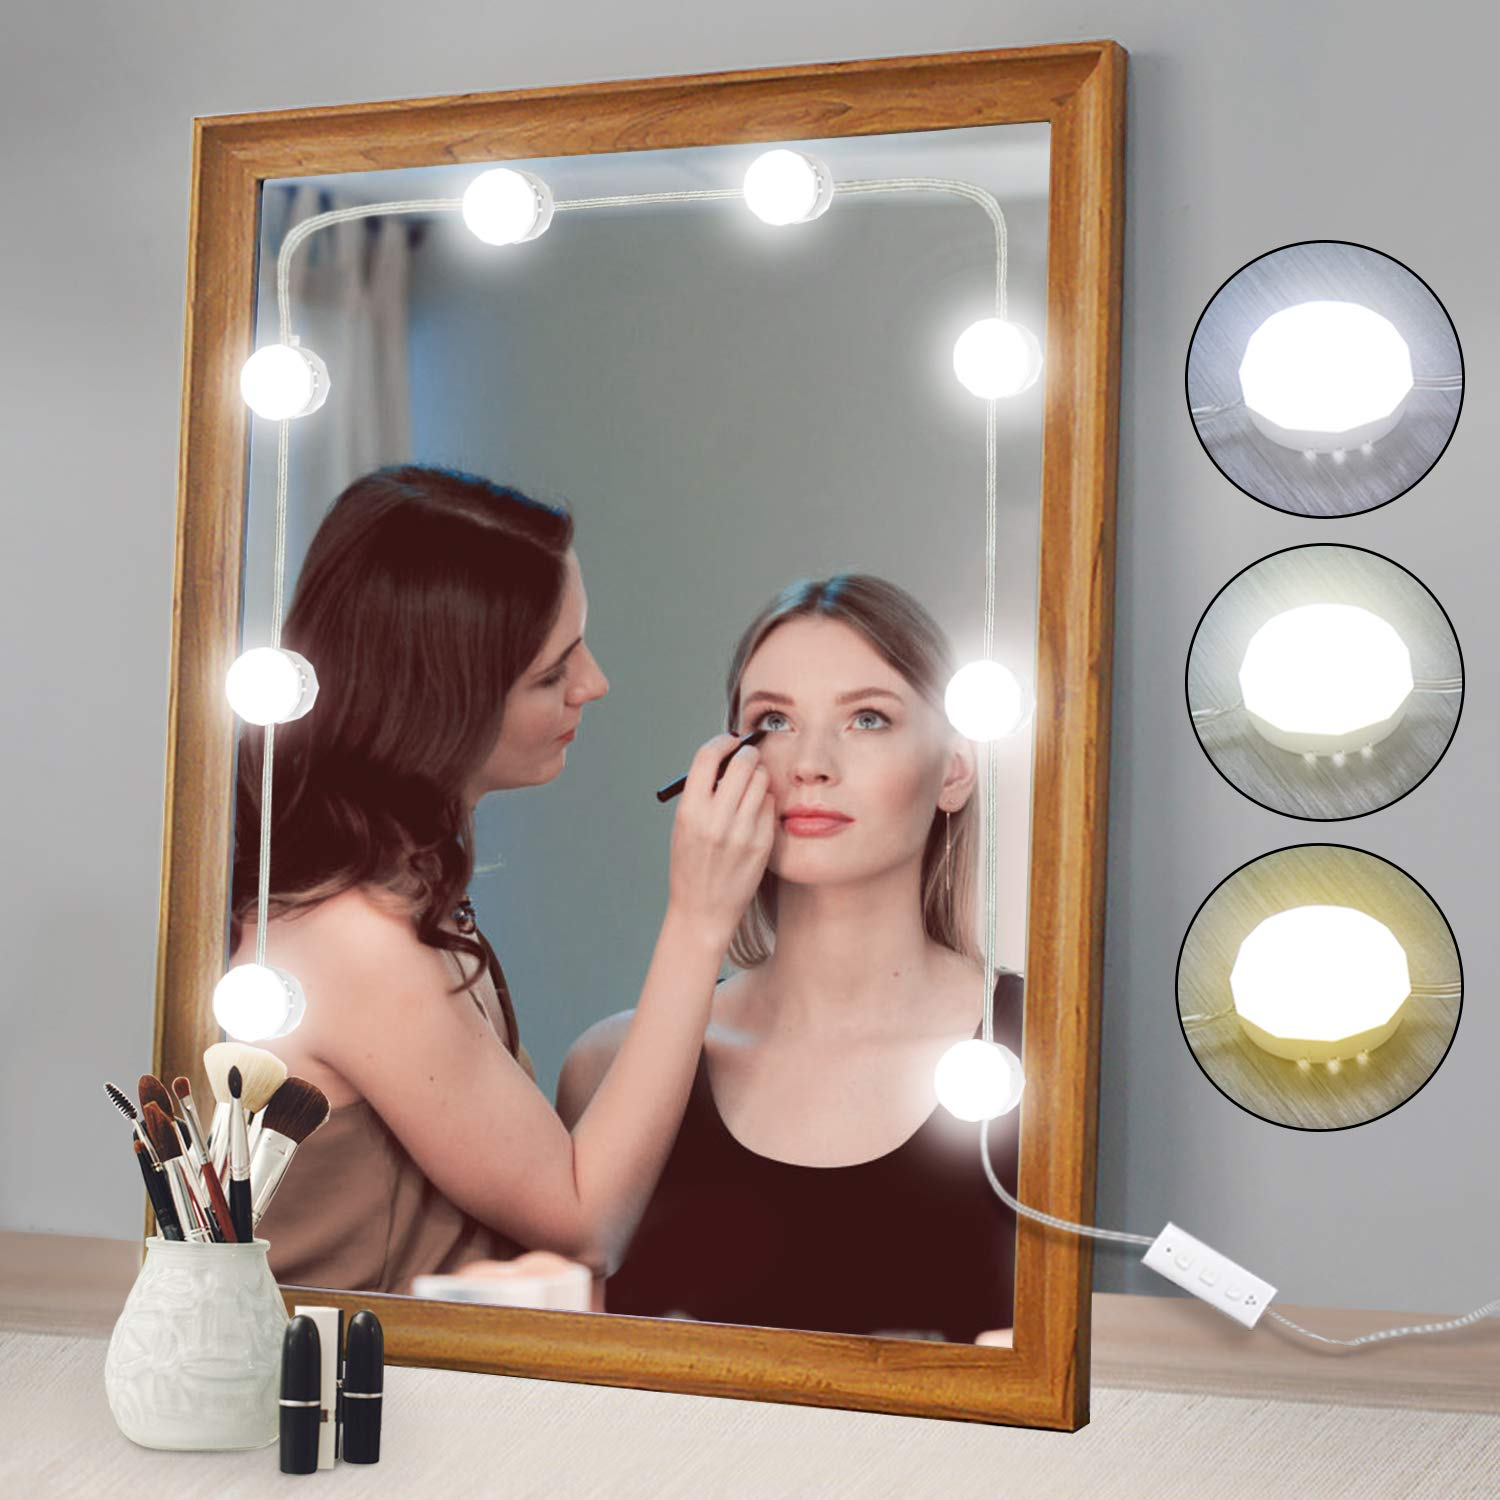 2018 Newest Vanity Mirror Lights Kit Hollywood Style 8 Dimmable LED Light Bulbs Warm White to Daylight Tunable, Linkable Lighting for Makeup Vanity Table Set in Dressing Room (Mirror Not Included)